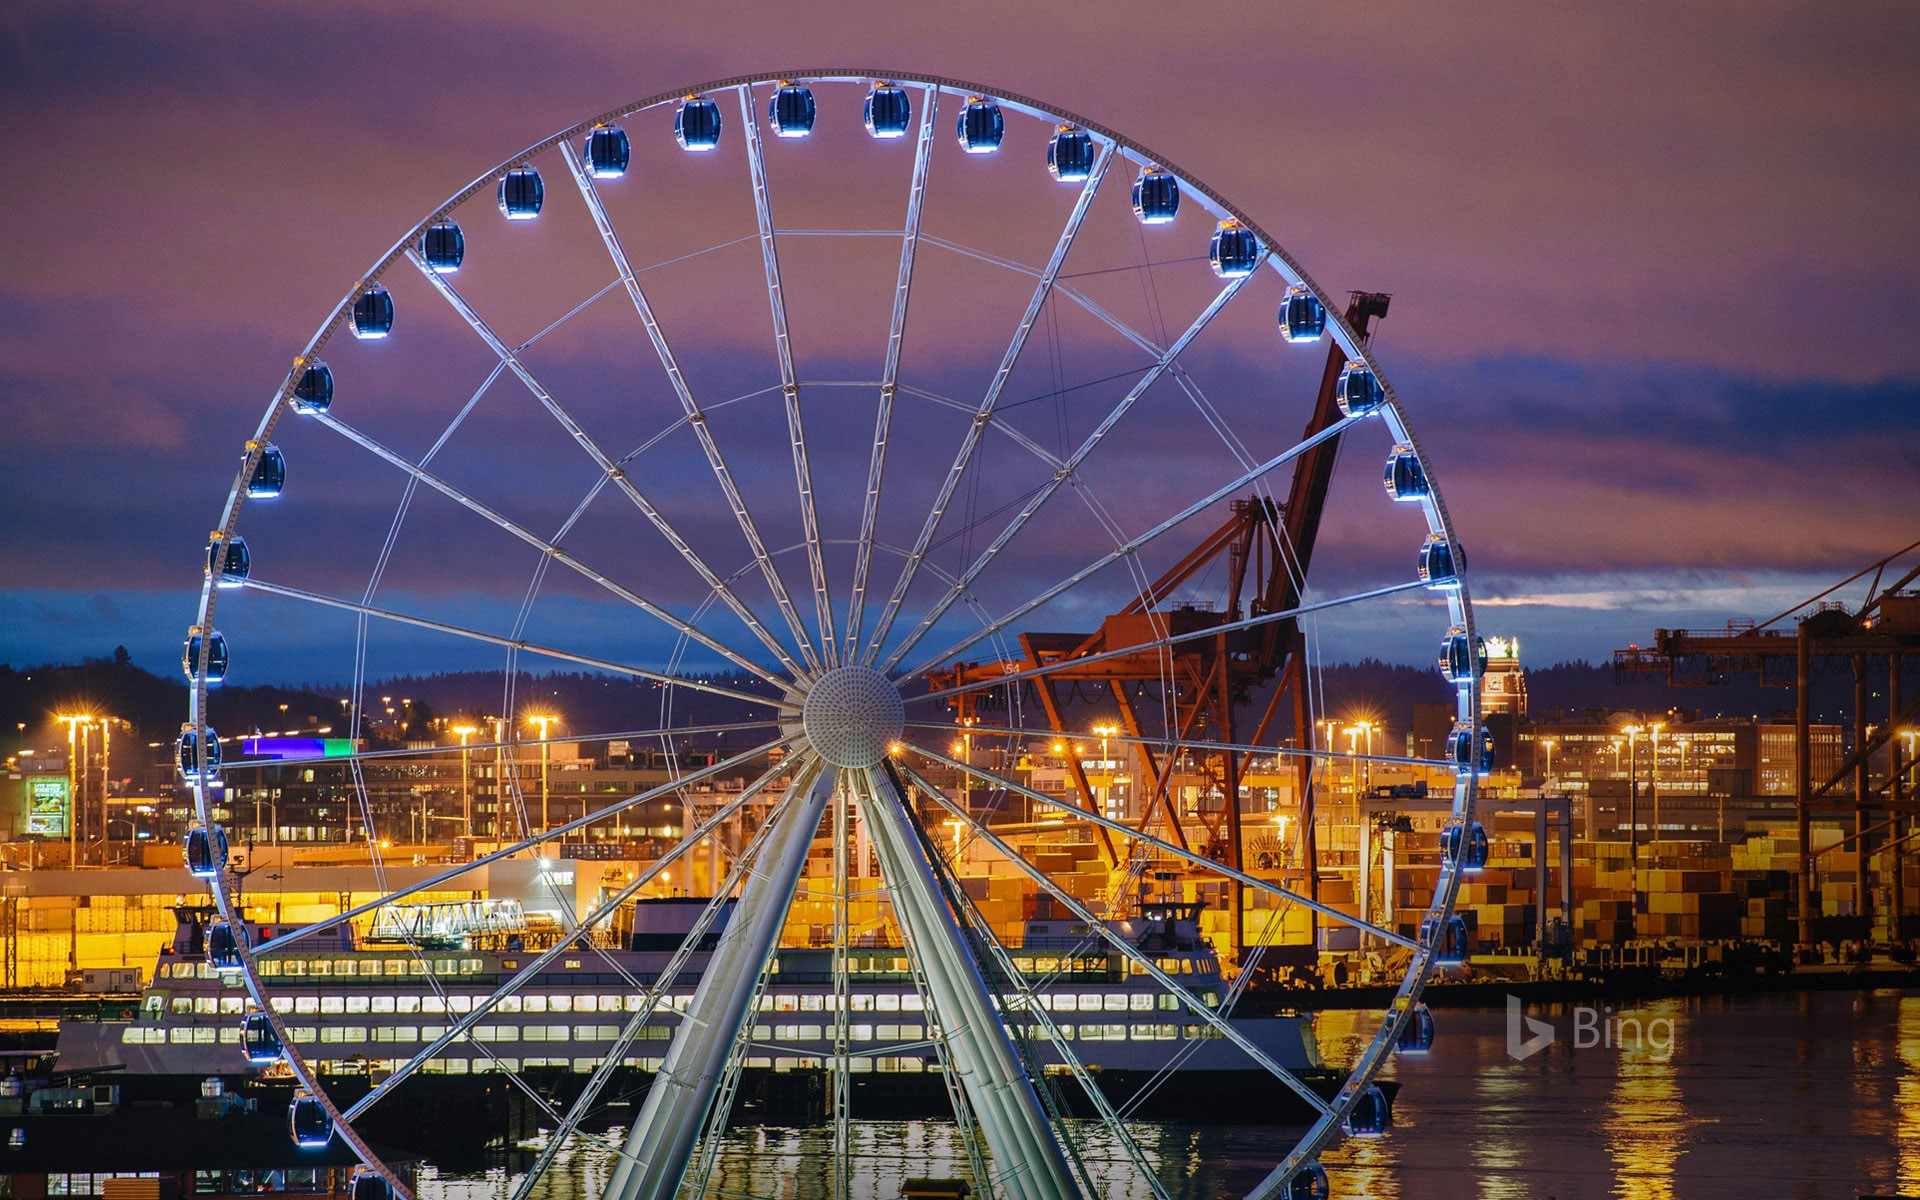 The Seattle Great Wheel in Seattle, Washington